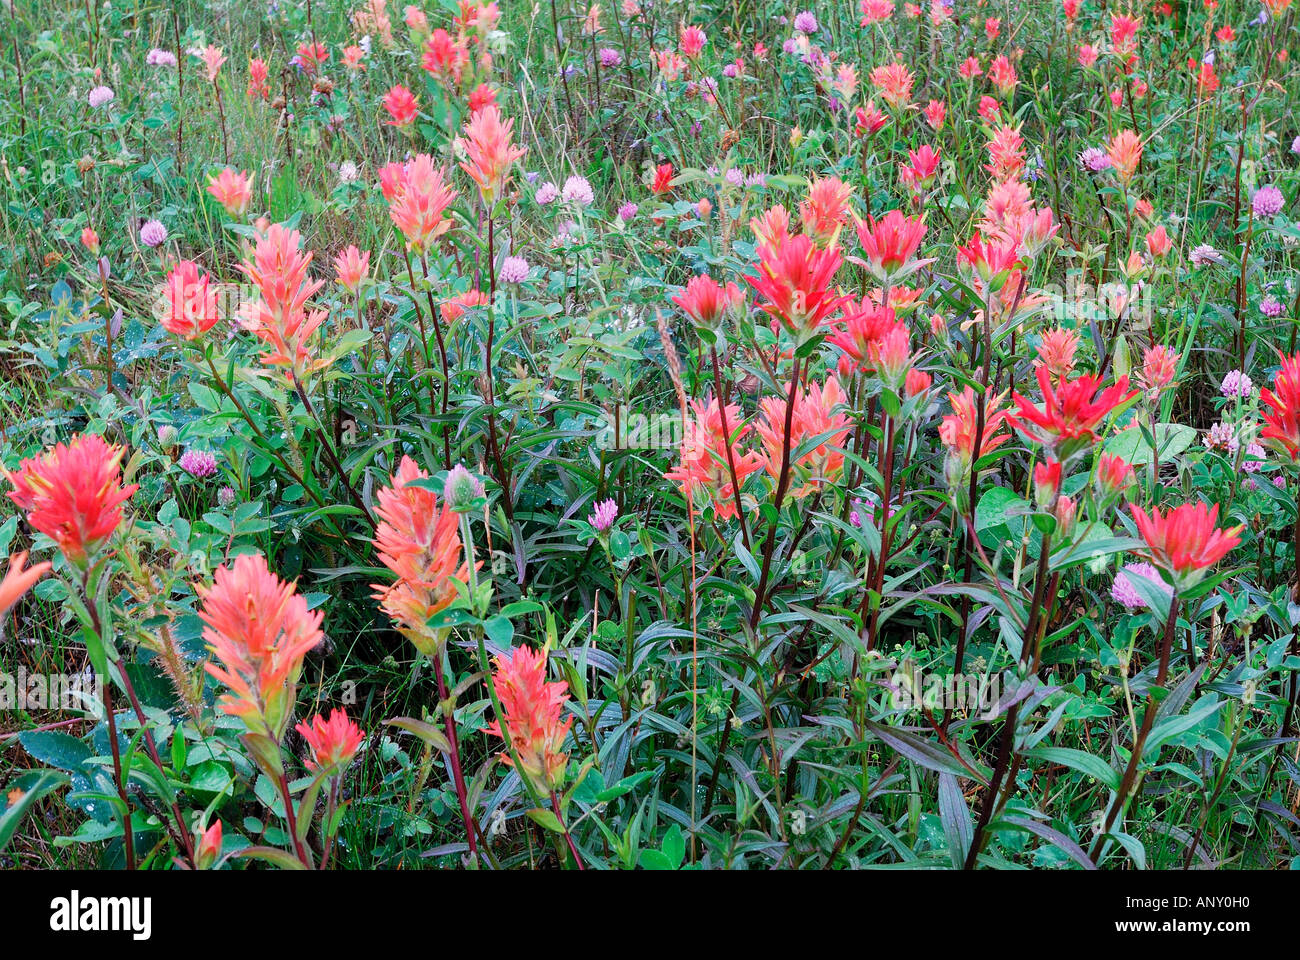 Indian Paintbrush growing in a field - Stock Image